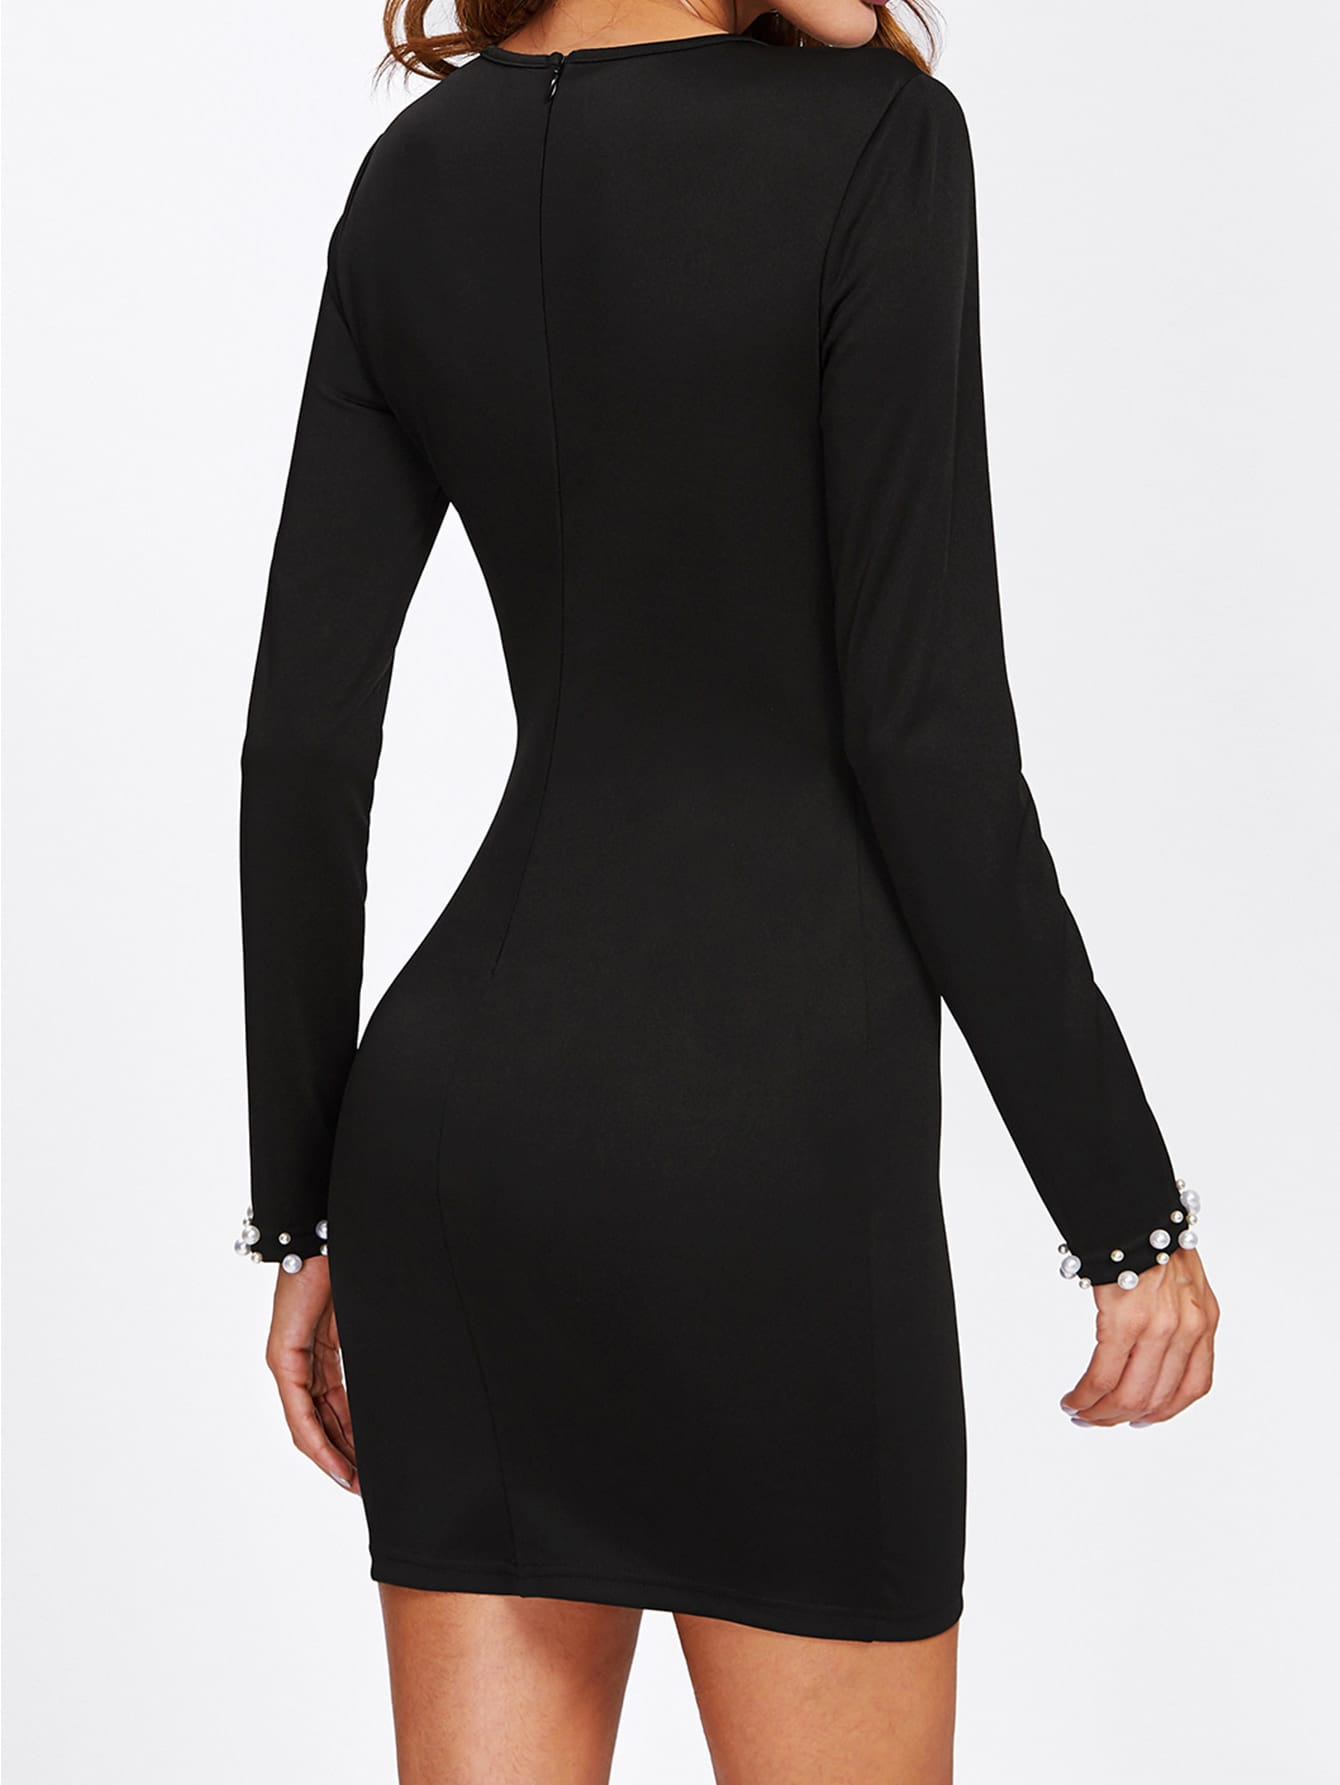 Pearl Beaded Embellished Black Long Sleeve Mini Dress